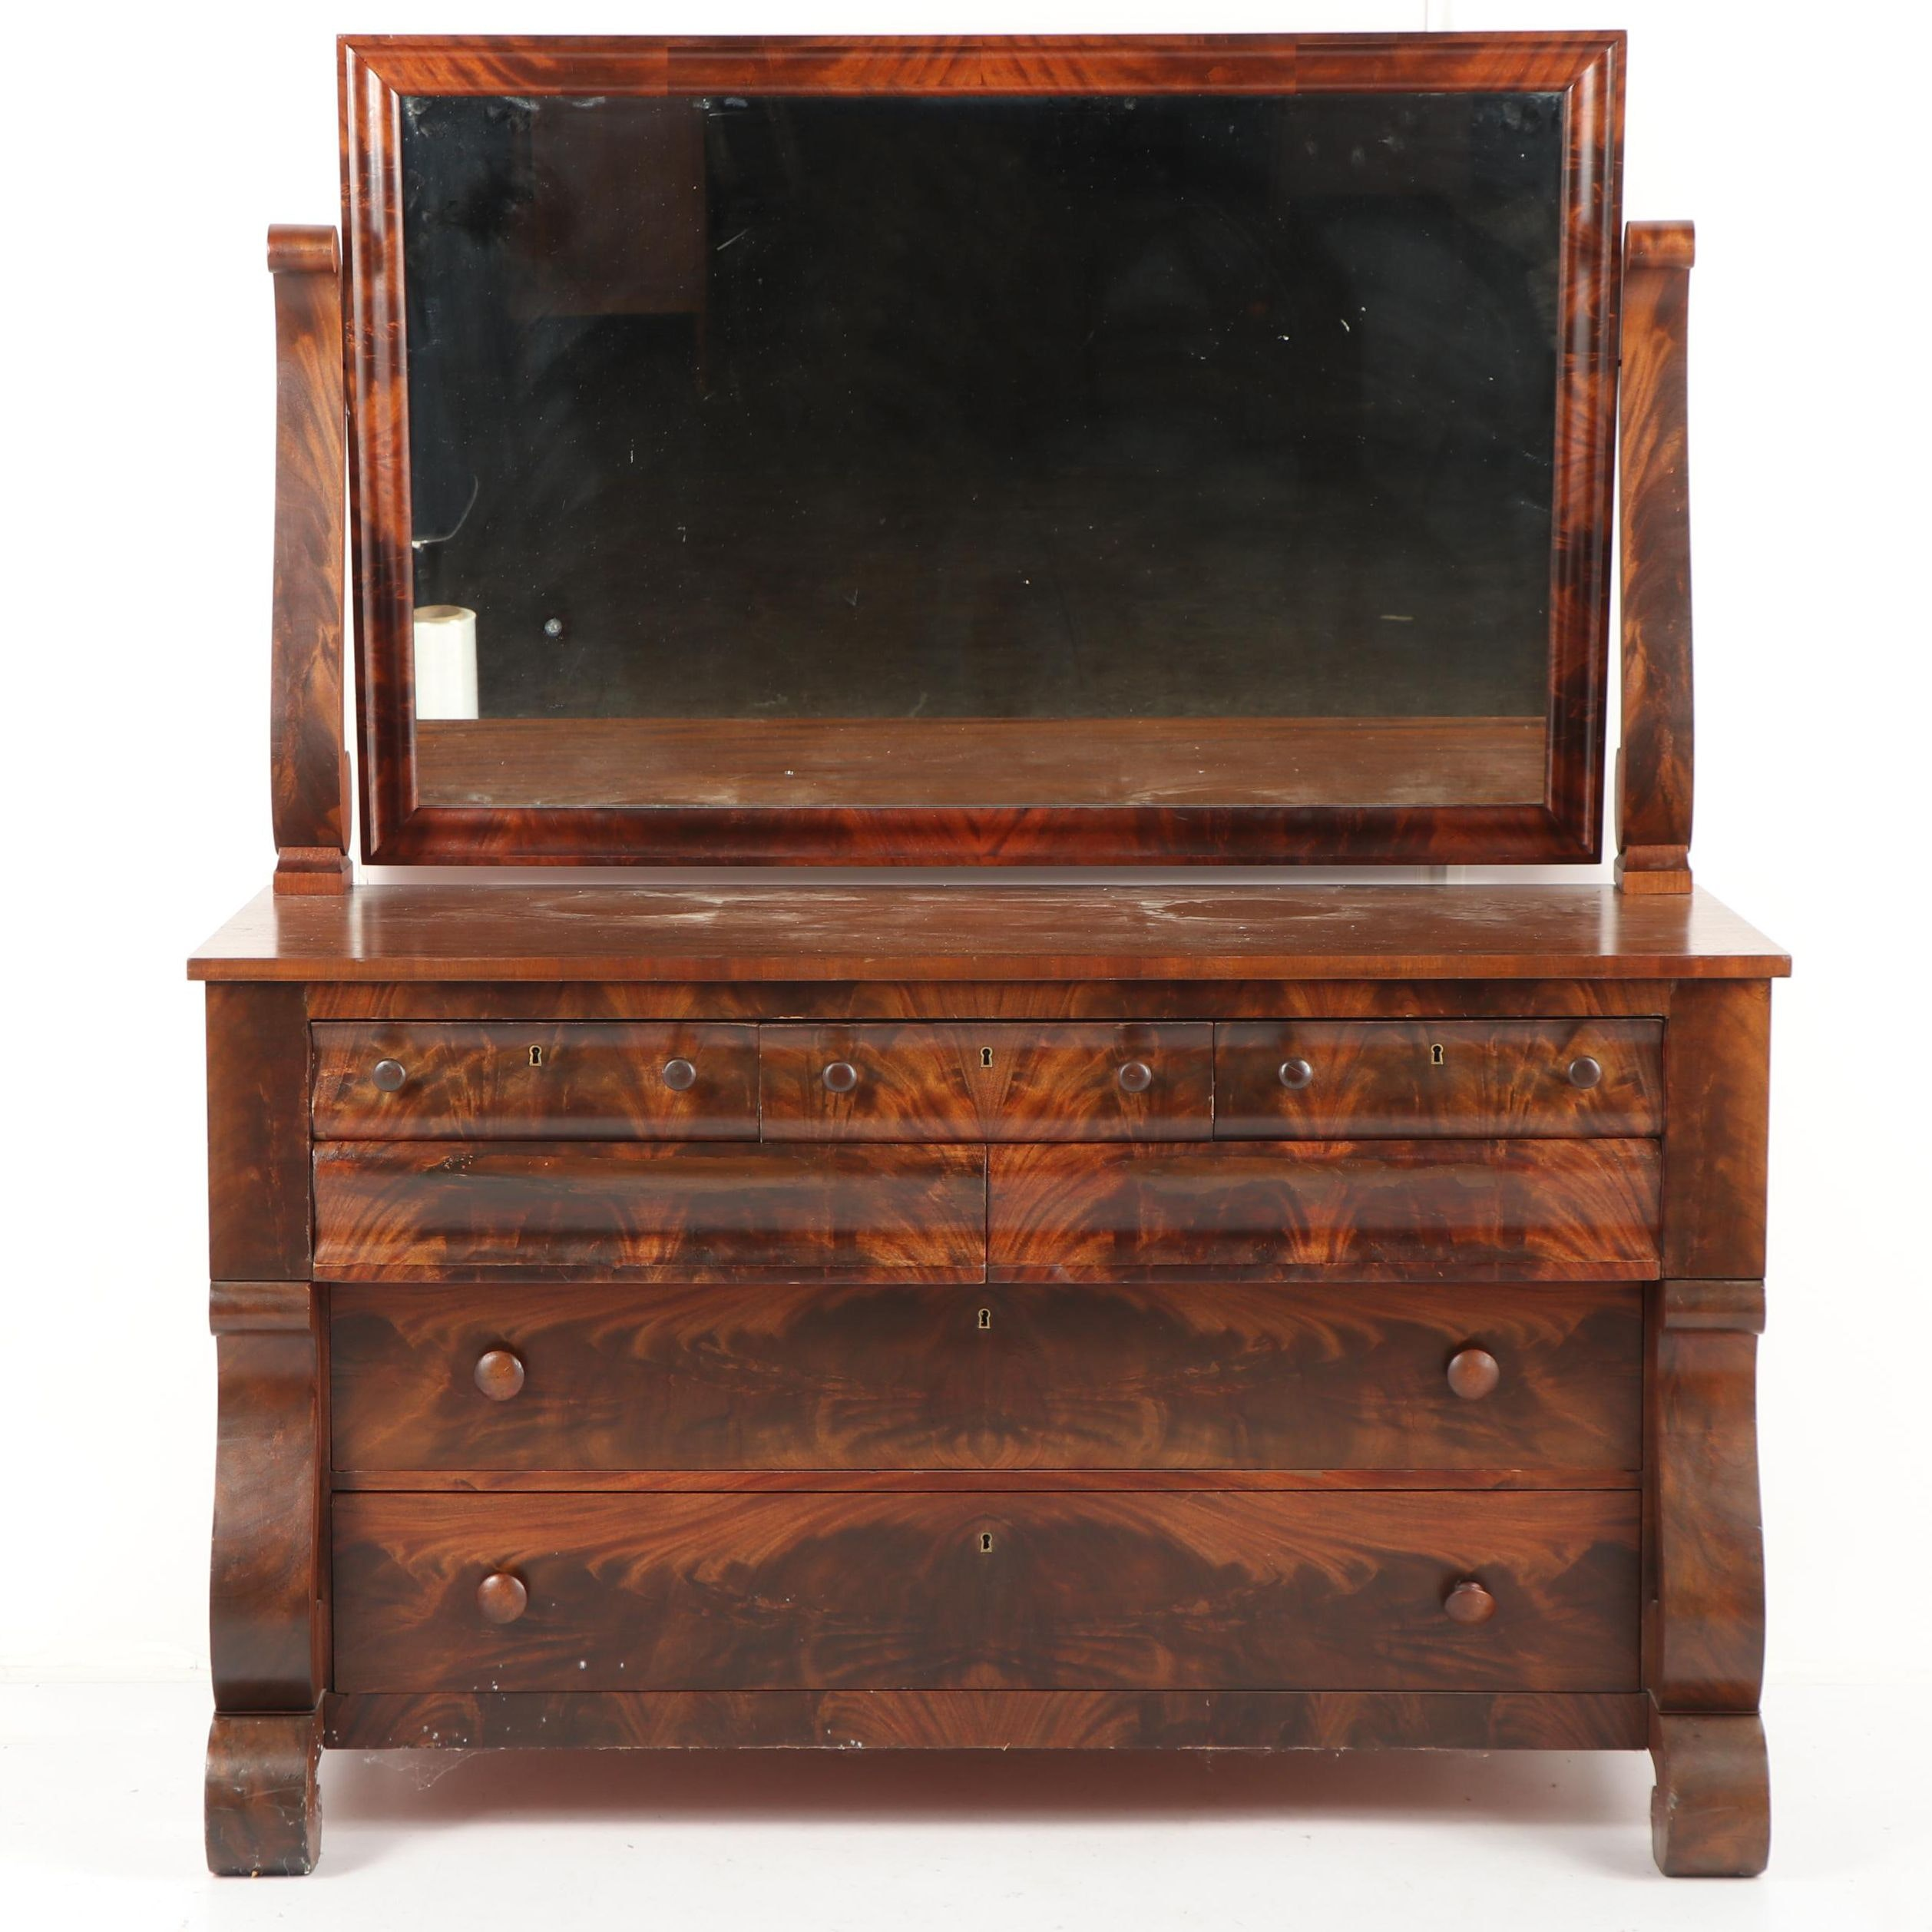 Flame Mahogany Empire Style Dresser and Tilting Mirror